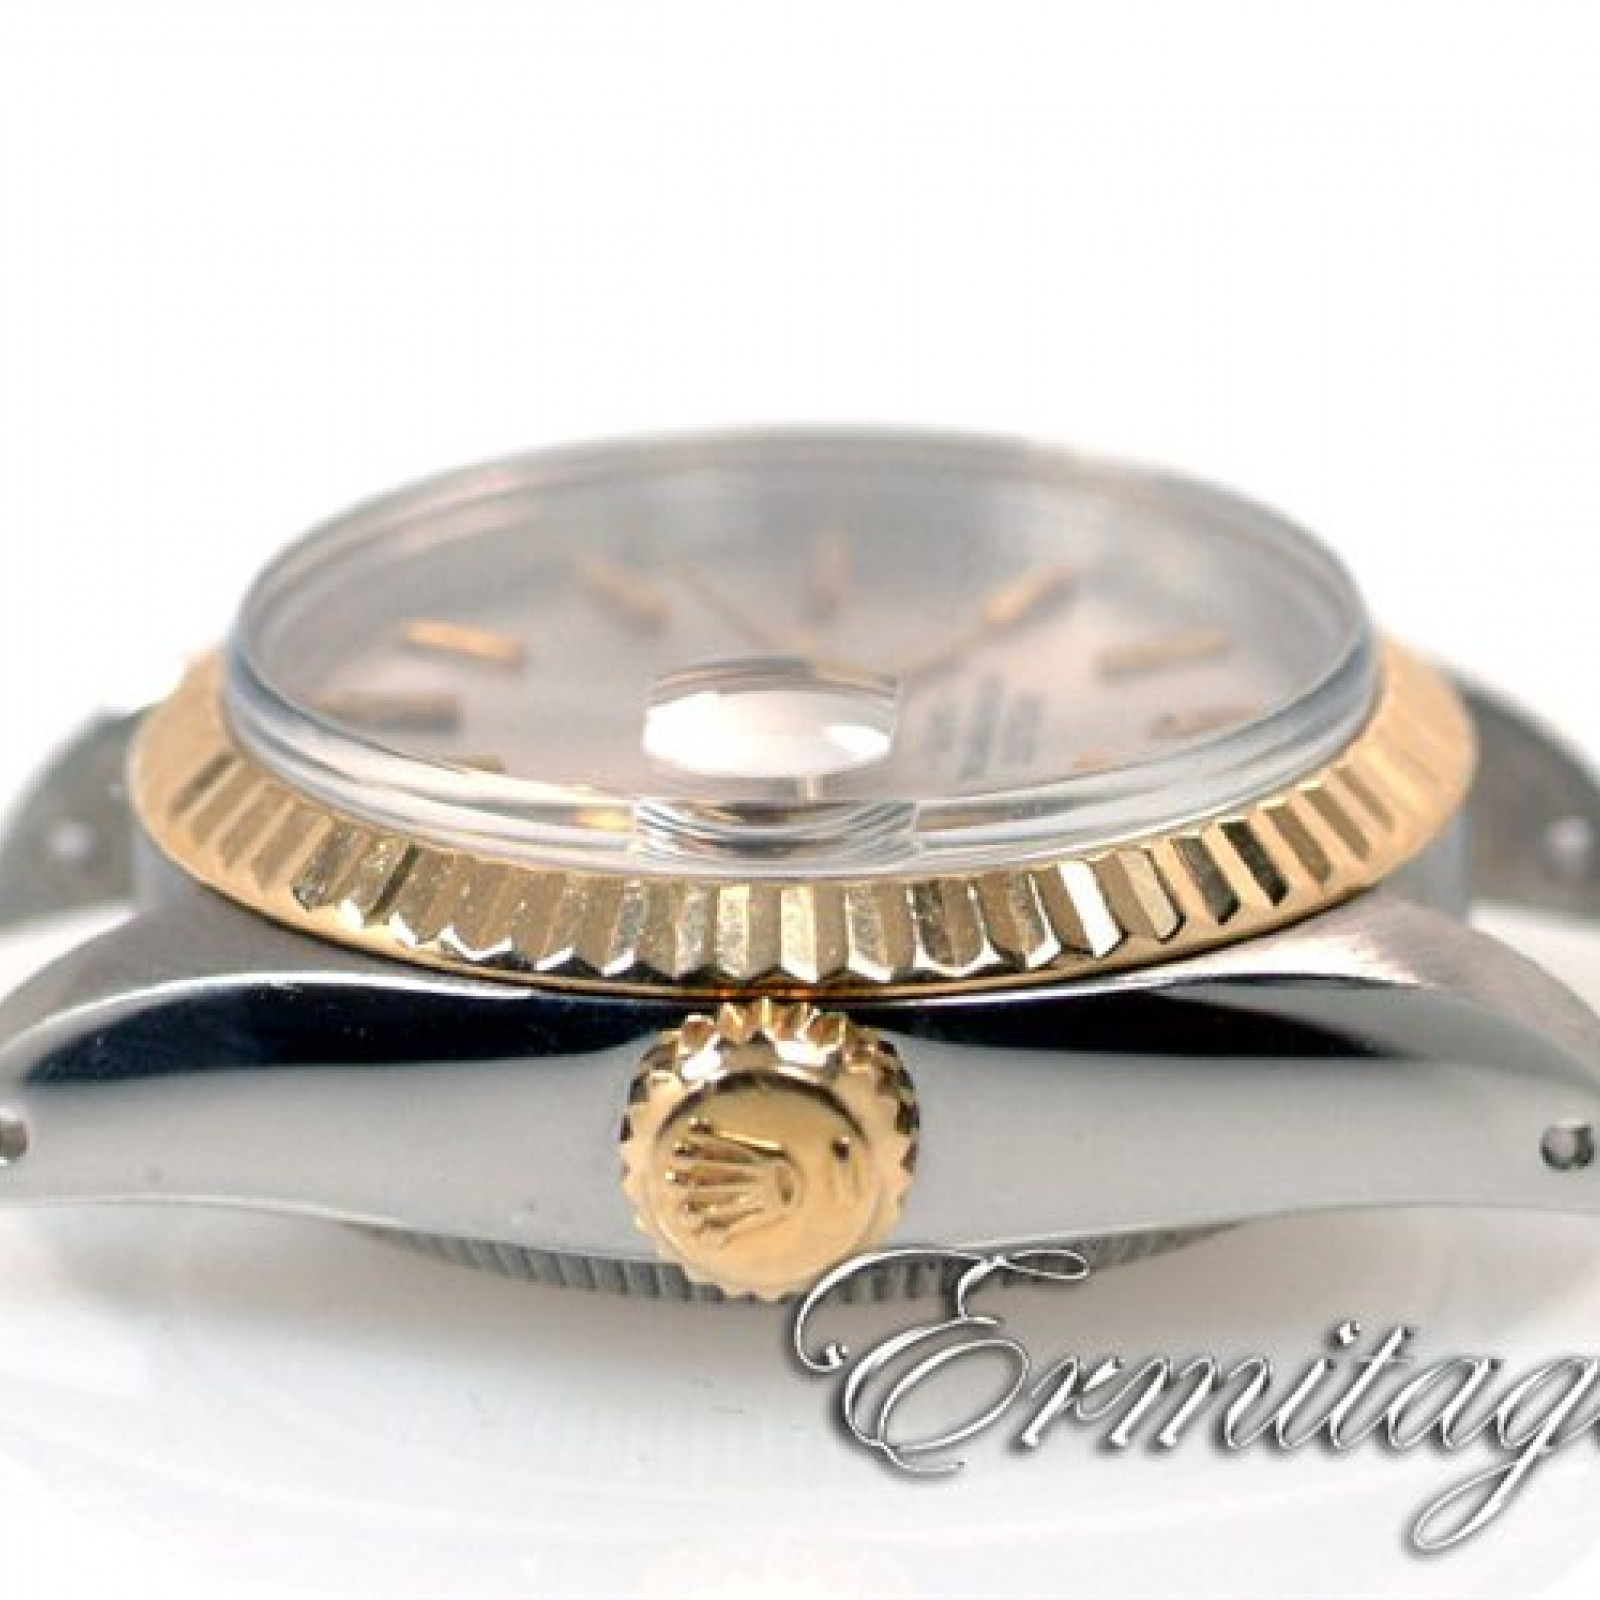 Vintage Rolex Oyster Perpetual Date 6916 Gold & Steel